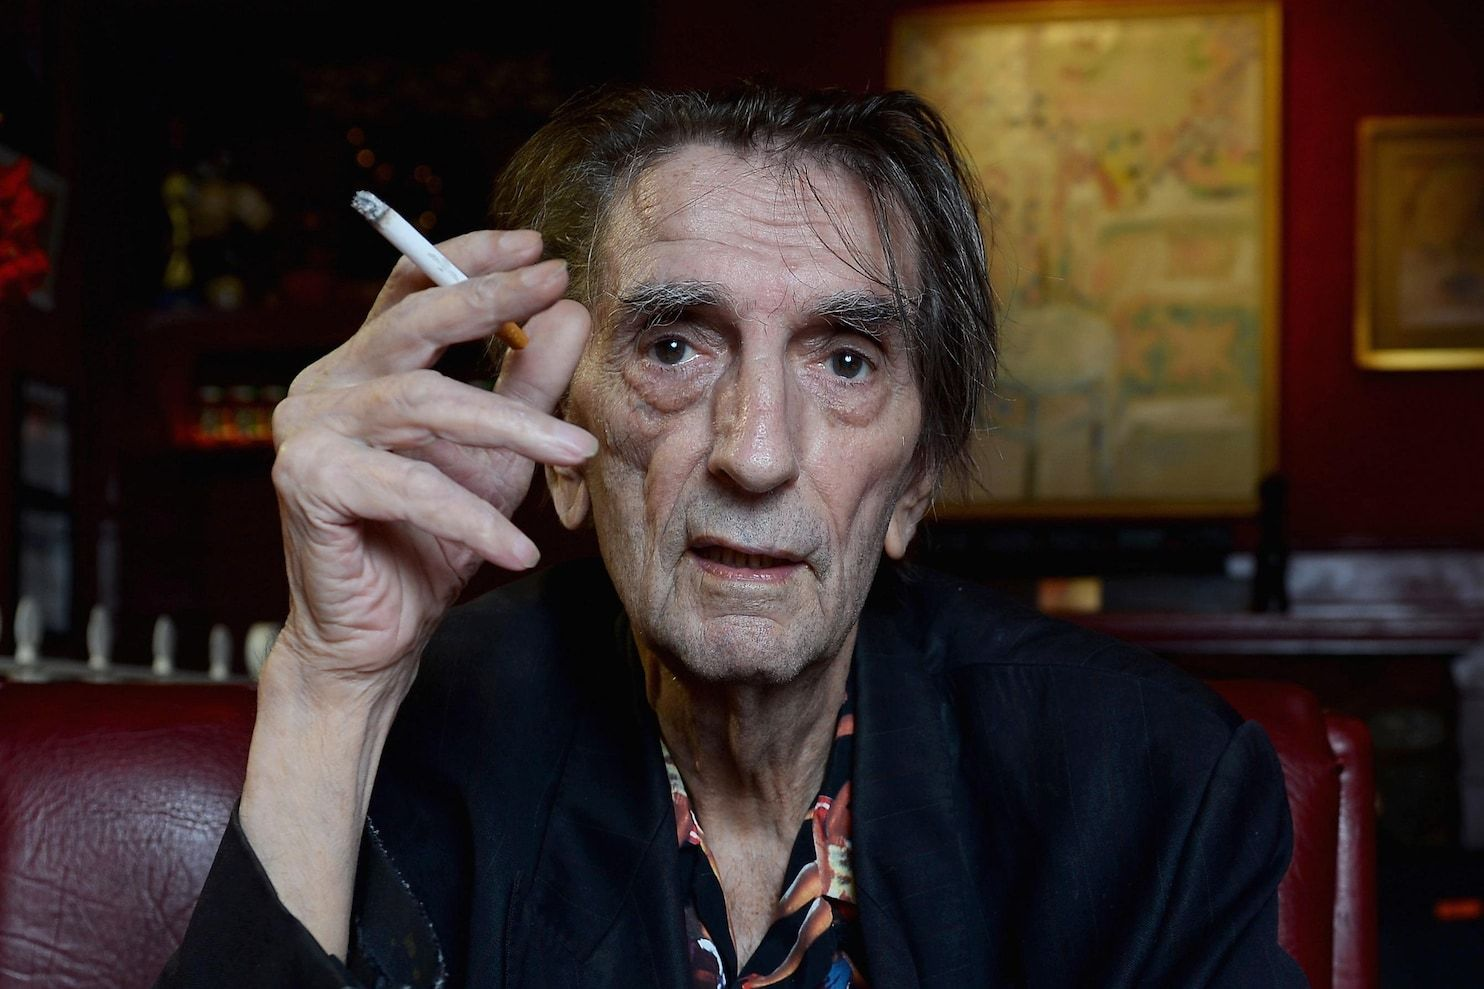 Harry Dean Stanton, actor who excelled at playing losers and eccentrics, dies at 91 - Washington Post